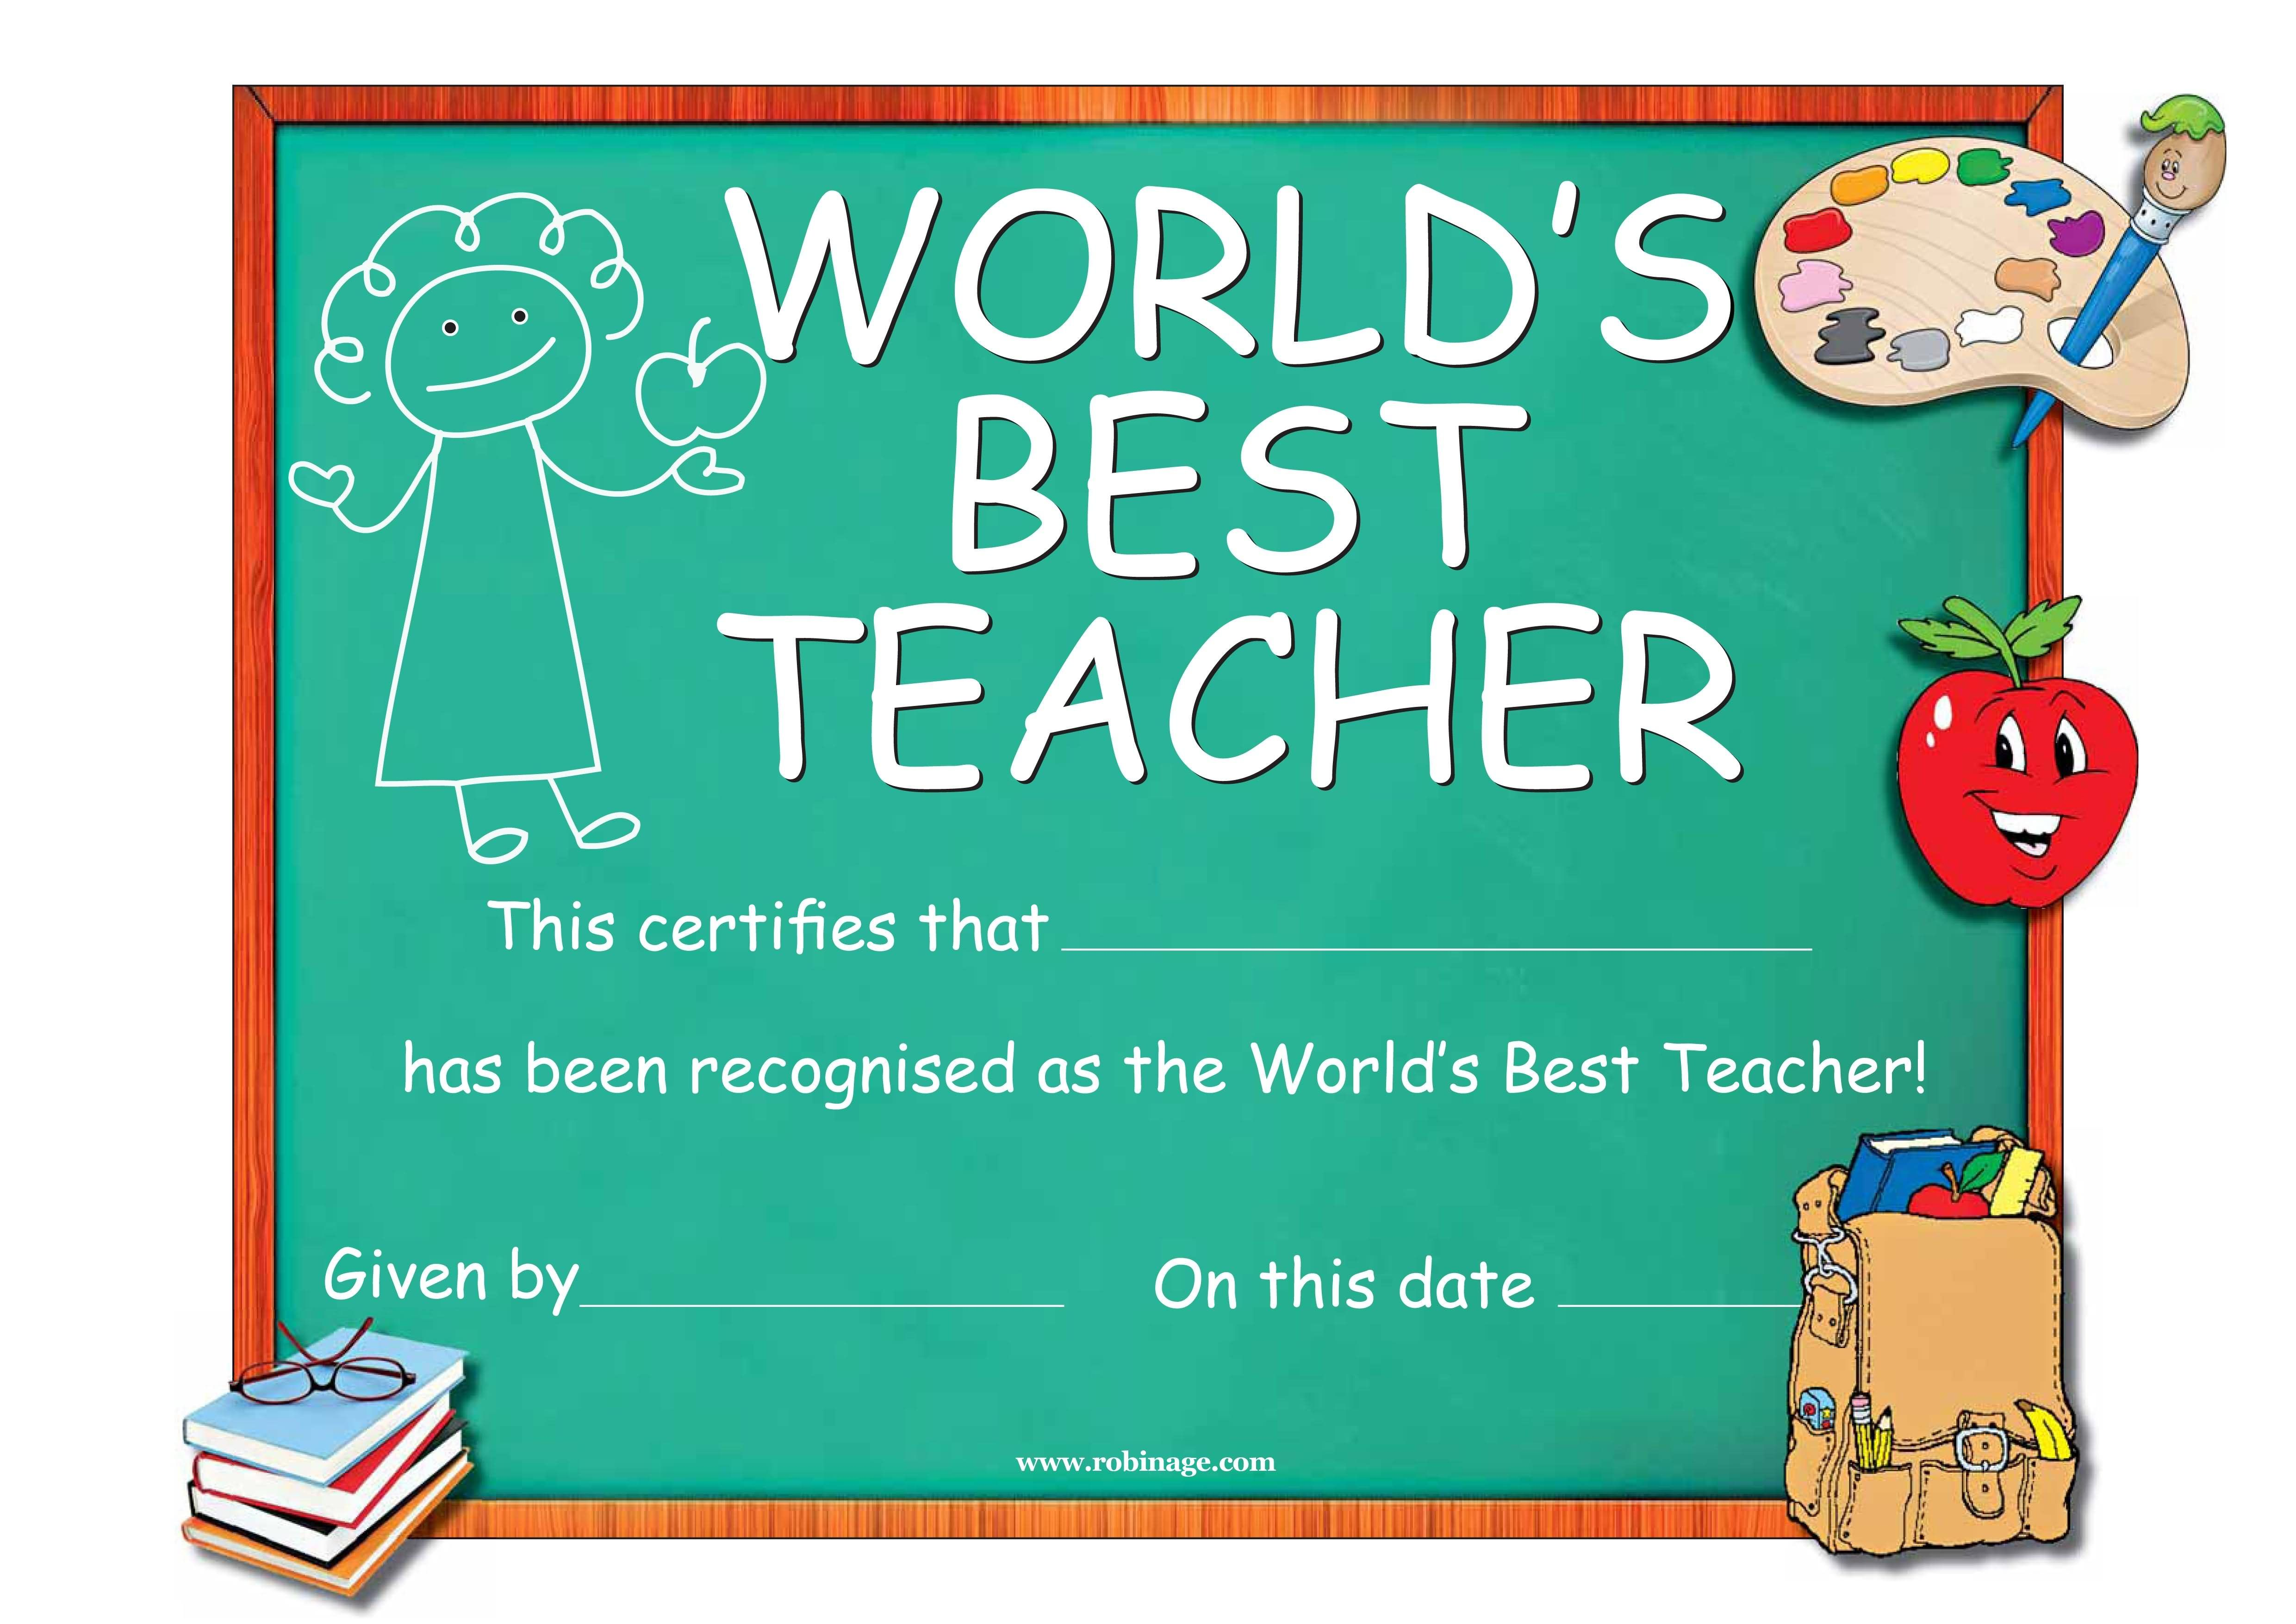 world teacher's day means we as teachers are recognized